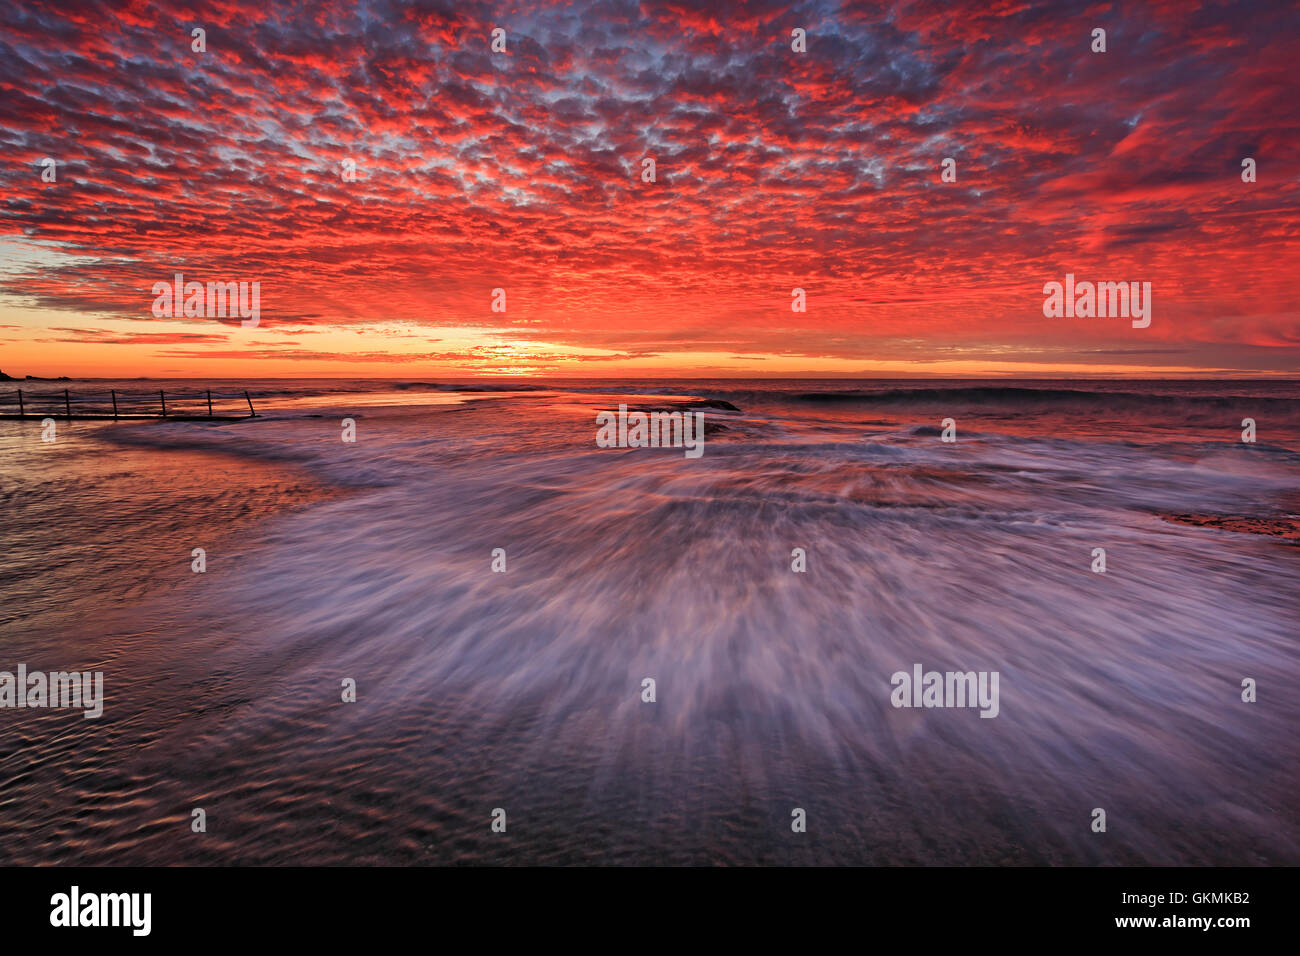 BLurred quick wave at golden hour over flat rocky seabed around rock pool of Mona Vale beach in Sydney. - Stock Image